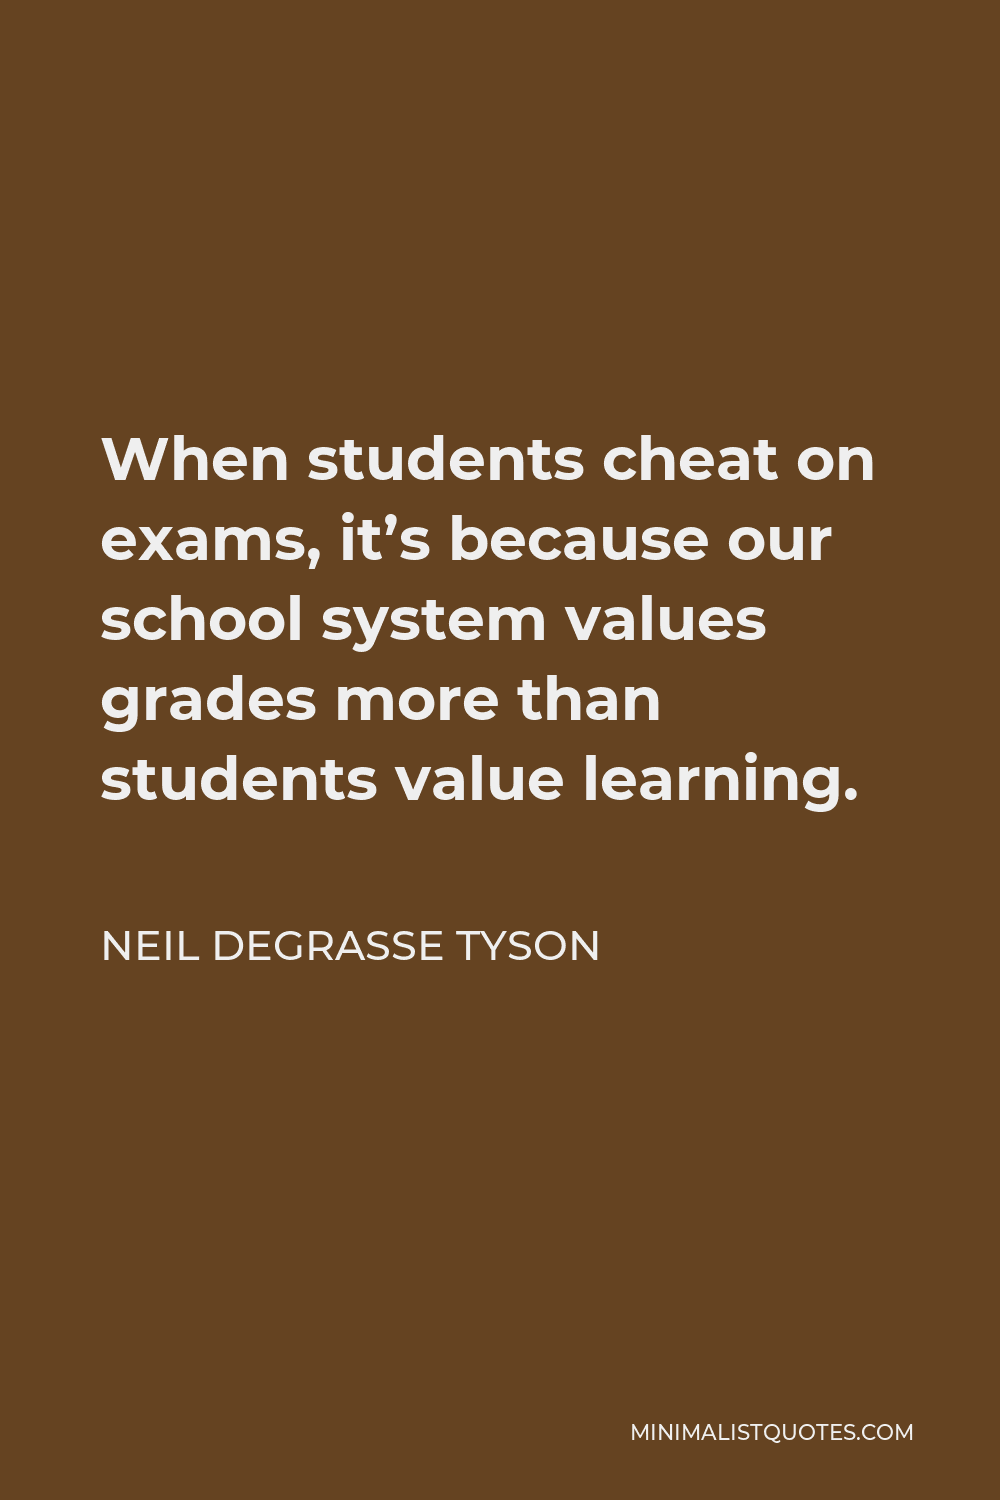 Neil deGrasse Tyson Quote - When students cheat on exams, it's because our school system values grades more than students value learning.